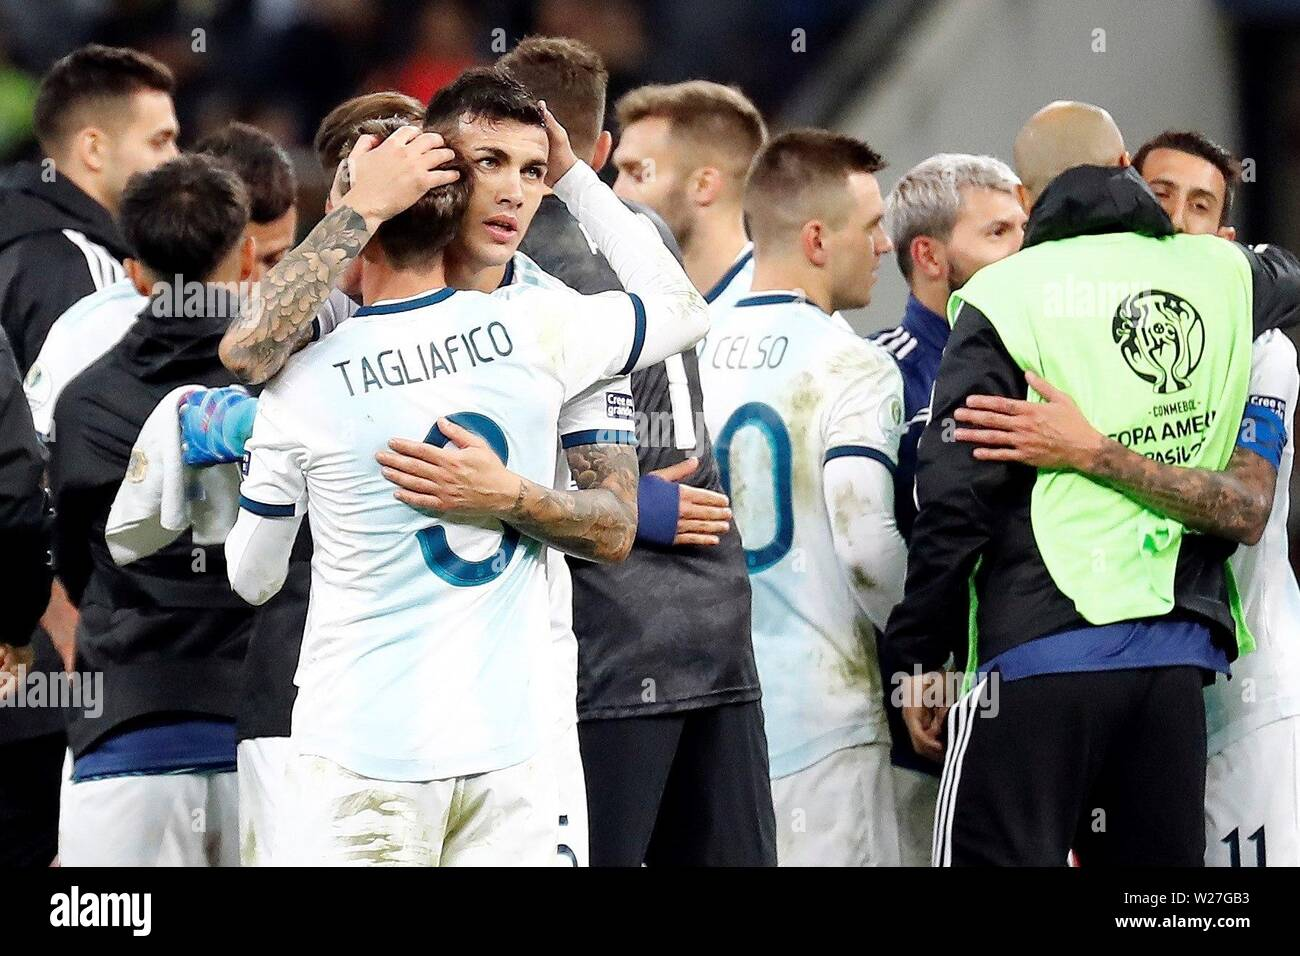 Sao Paulo, Brazil. 06th July, 2019. Argentine players celebrate after winning the Copa America 2019 3rd place soccer match between Argentina and Chile, at Arena Corinthians Stadium in Sao Paulo, Brazil, 6 July 2019. Credit: Sebastiao Moreira/EFE/Alamy Live News - Stock Image